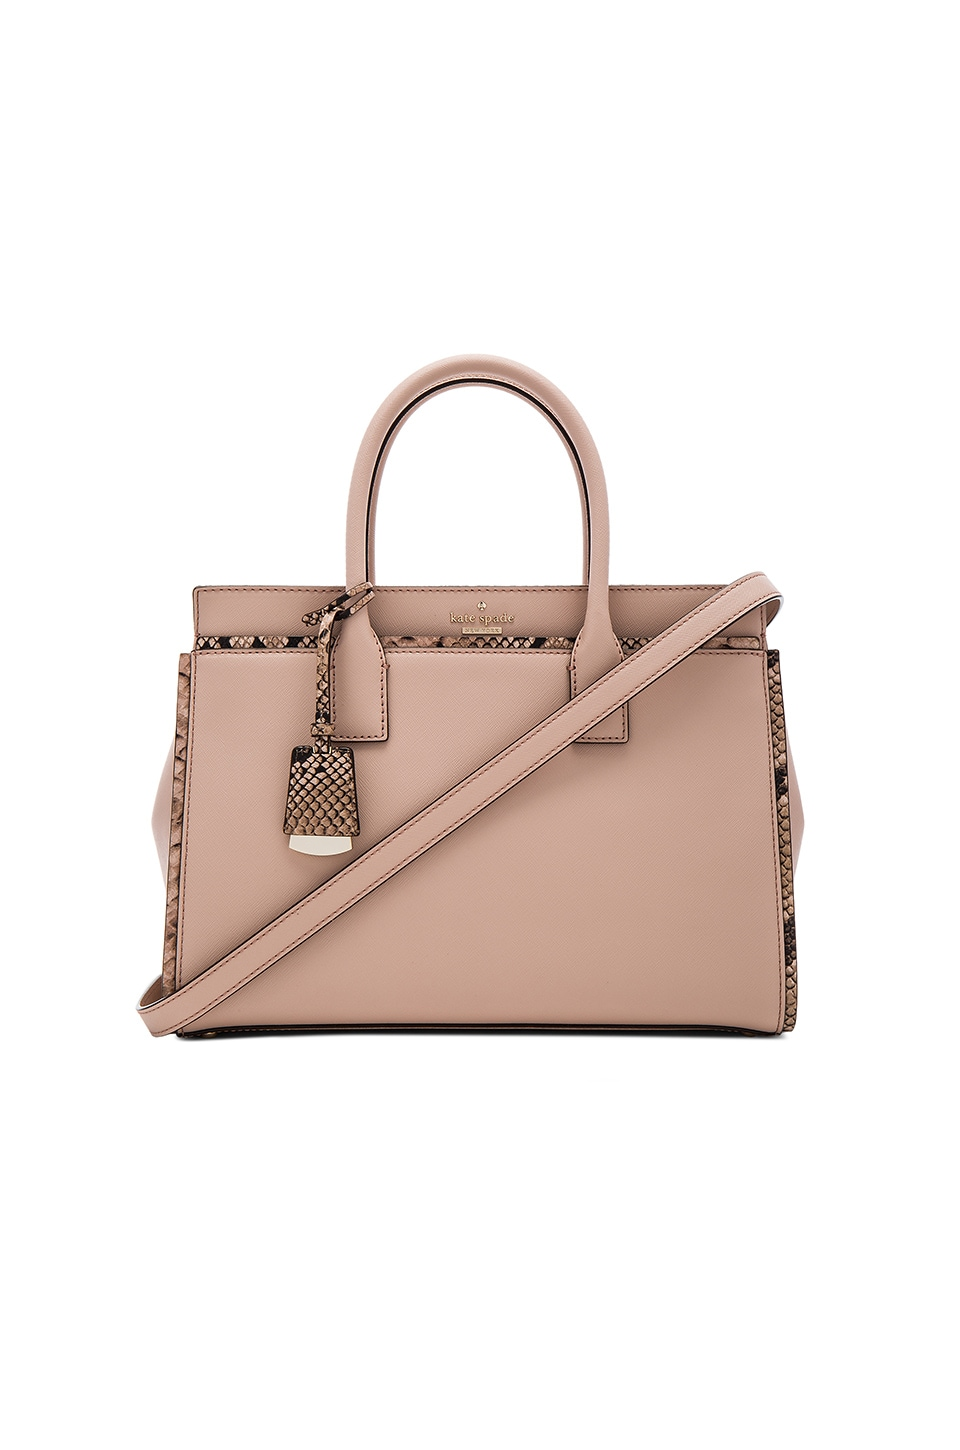 kate spade new york Candace Satchel Bag in Toasted Wheat